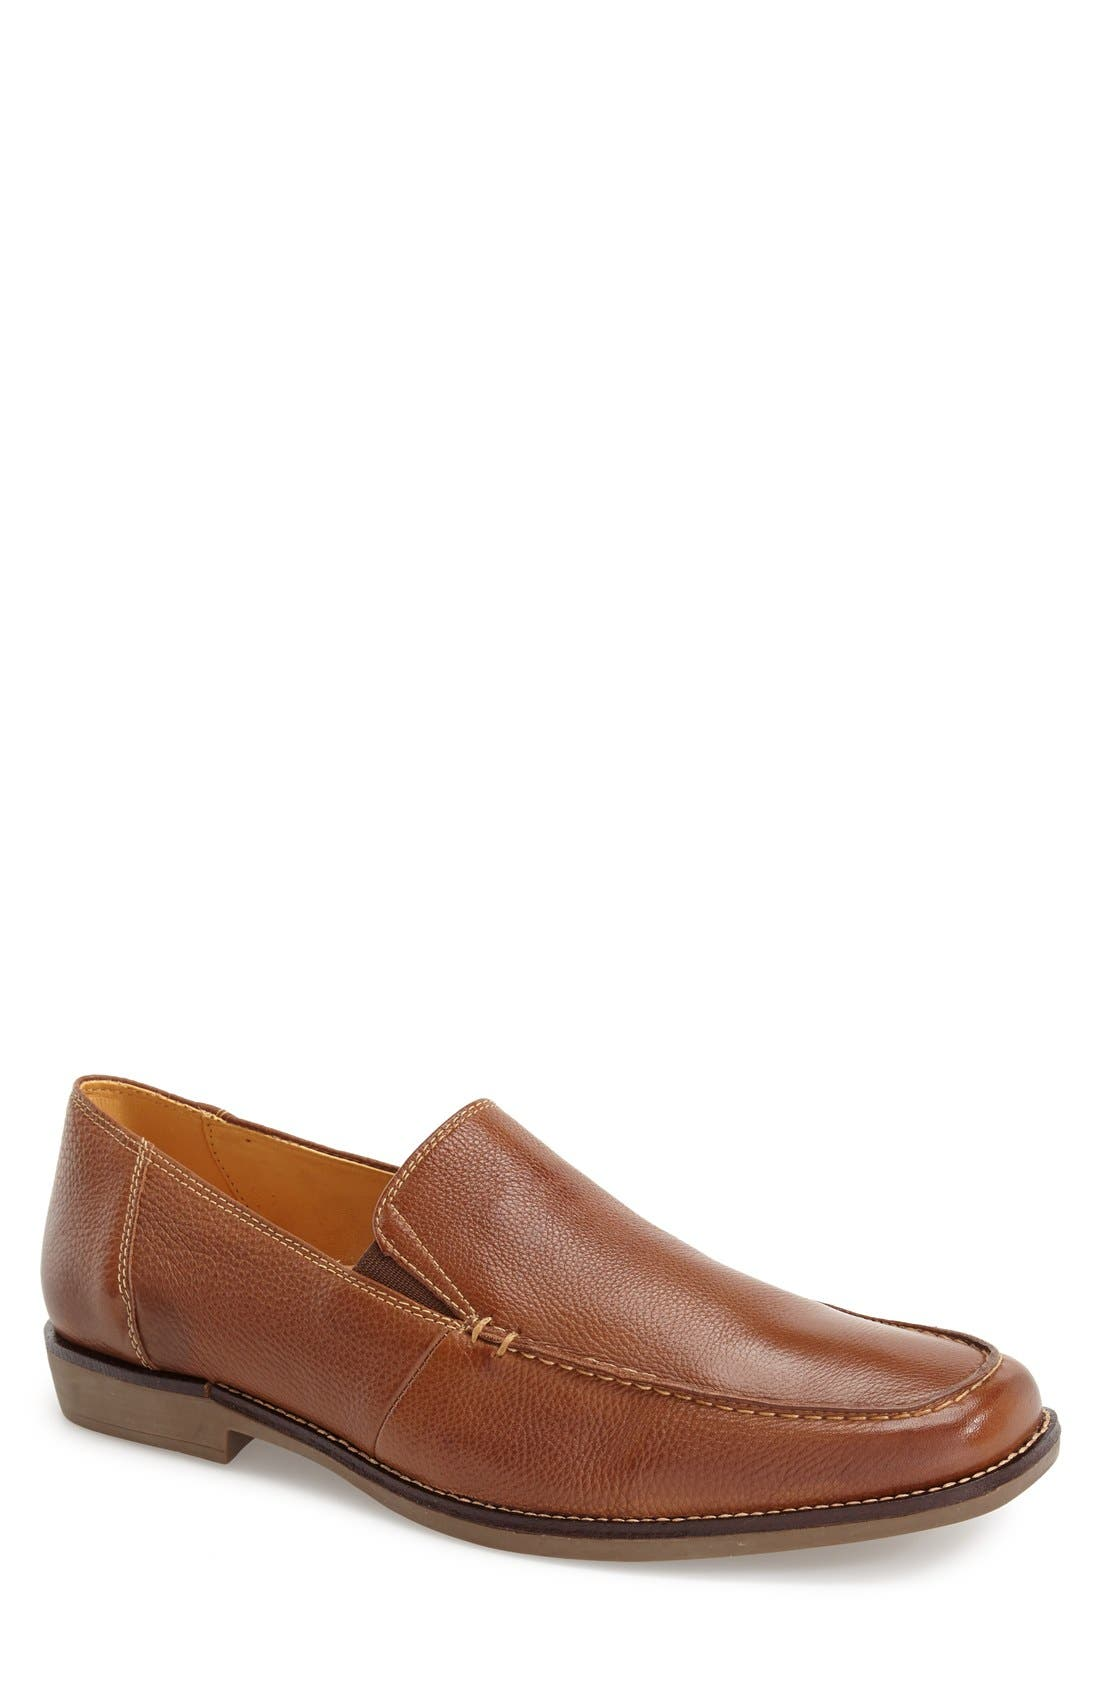 SANDRO MOSCOLONI Easy Leather Venetian Loafer